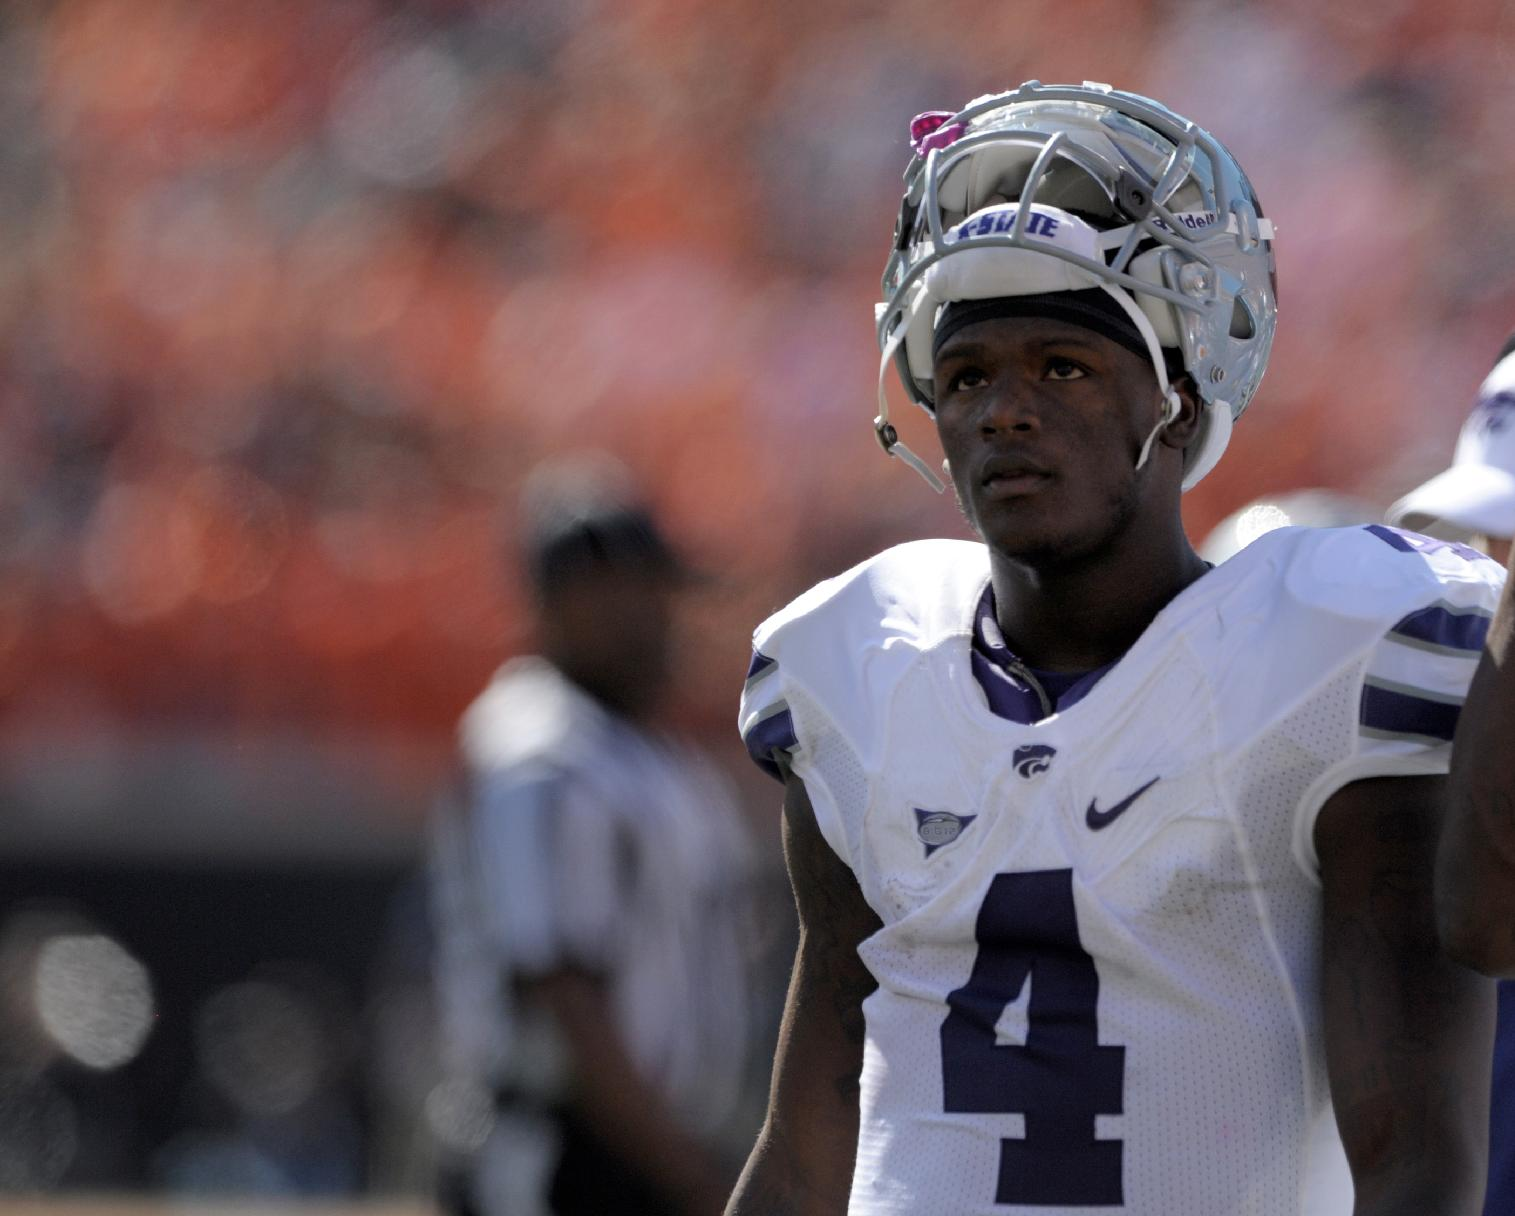 In this Oct. 5, 2013 file photo, Kansas State quarterback Daniel Sams looks up to the scoreboard during a timeout at an NCAA football game against Oklahoma State in Stillwater, Okla. Former quarterback Daniel Sams was granted a conditional release from Kansas State on Tuesday, May 13, 2014, to pursue playing opportunities closer to his home in Slidell, Louisiana. The release only allows Sams to contact Football Championship Subdivision schools with the exception of Stephen F. Austin, which plays Kansas State this season. It does not allow the former starting quarterback to transfer to another Bowl Subdivision school